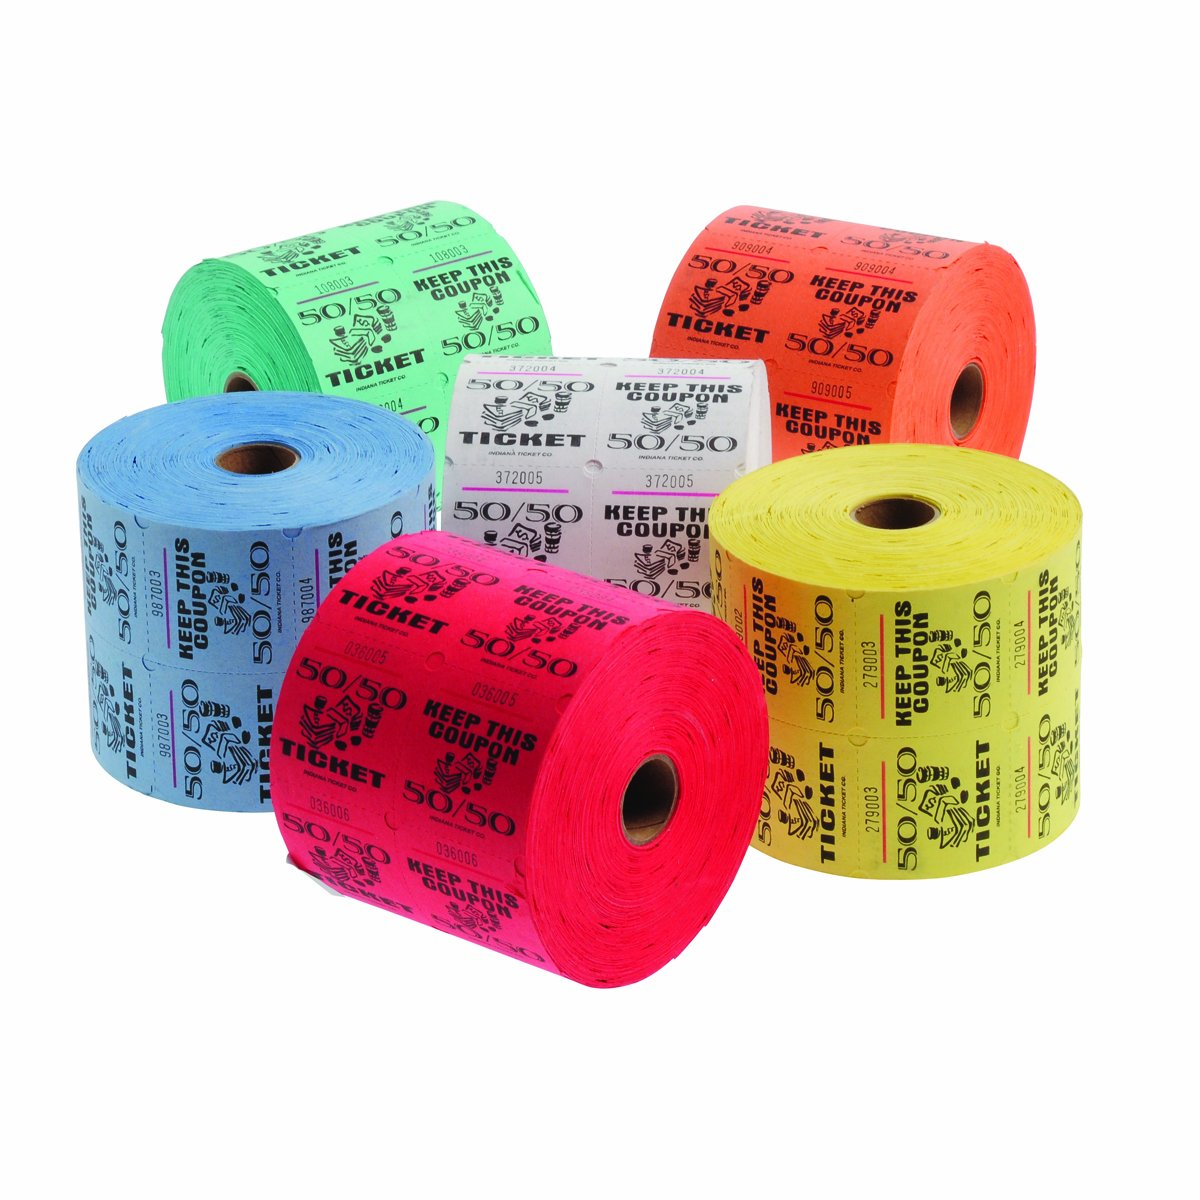 com blue raffle tickets roll of office com blue 50 50 raffle tickets roll of 1000 office products